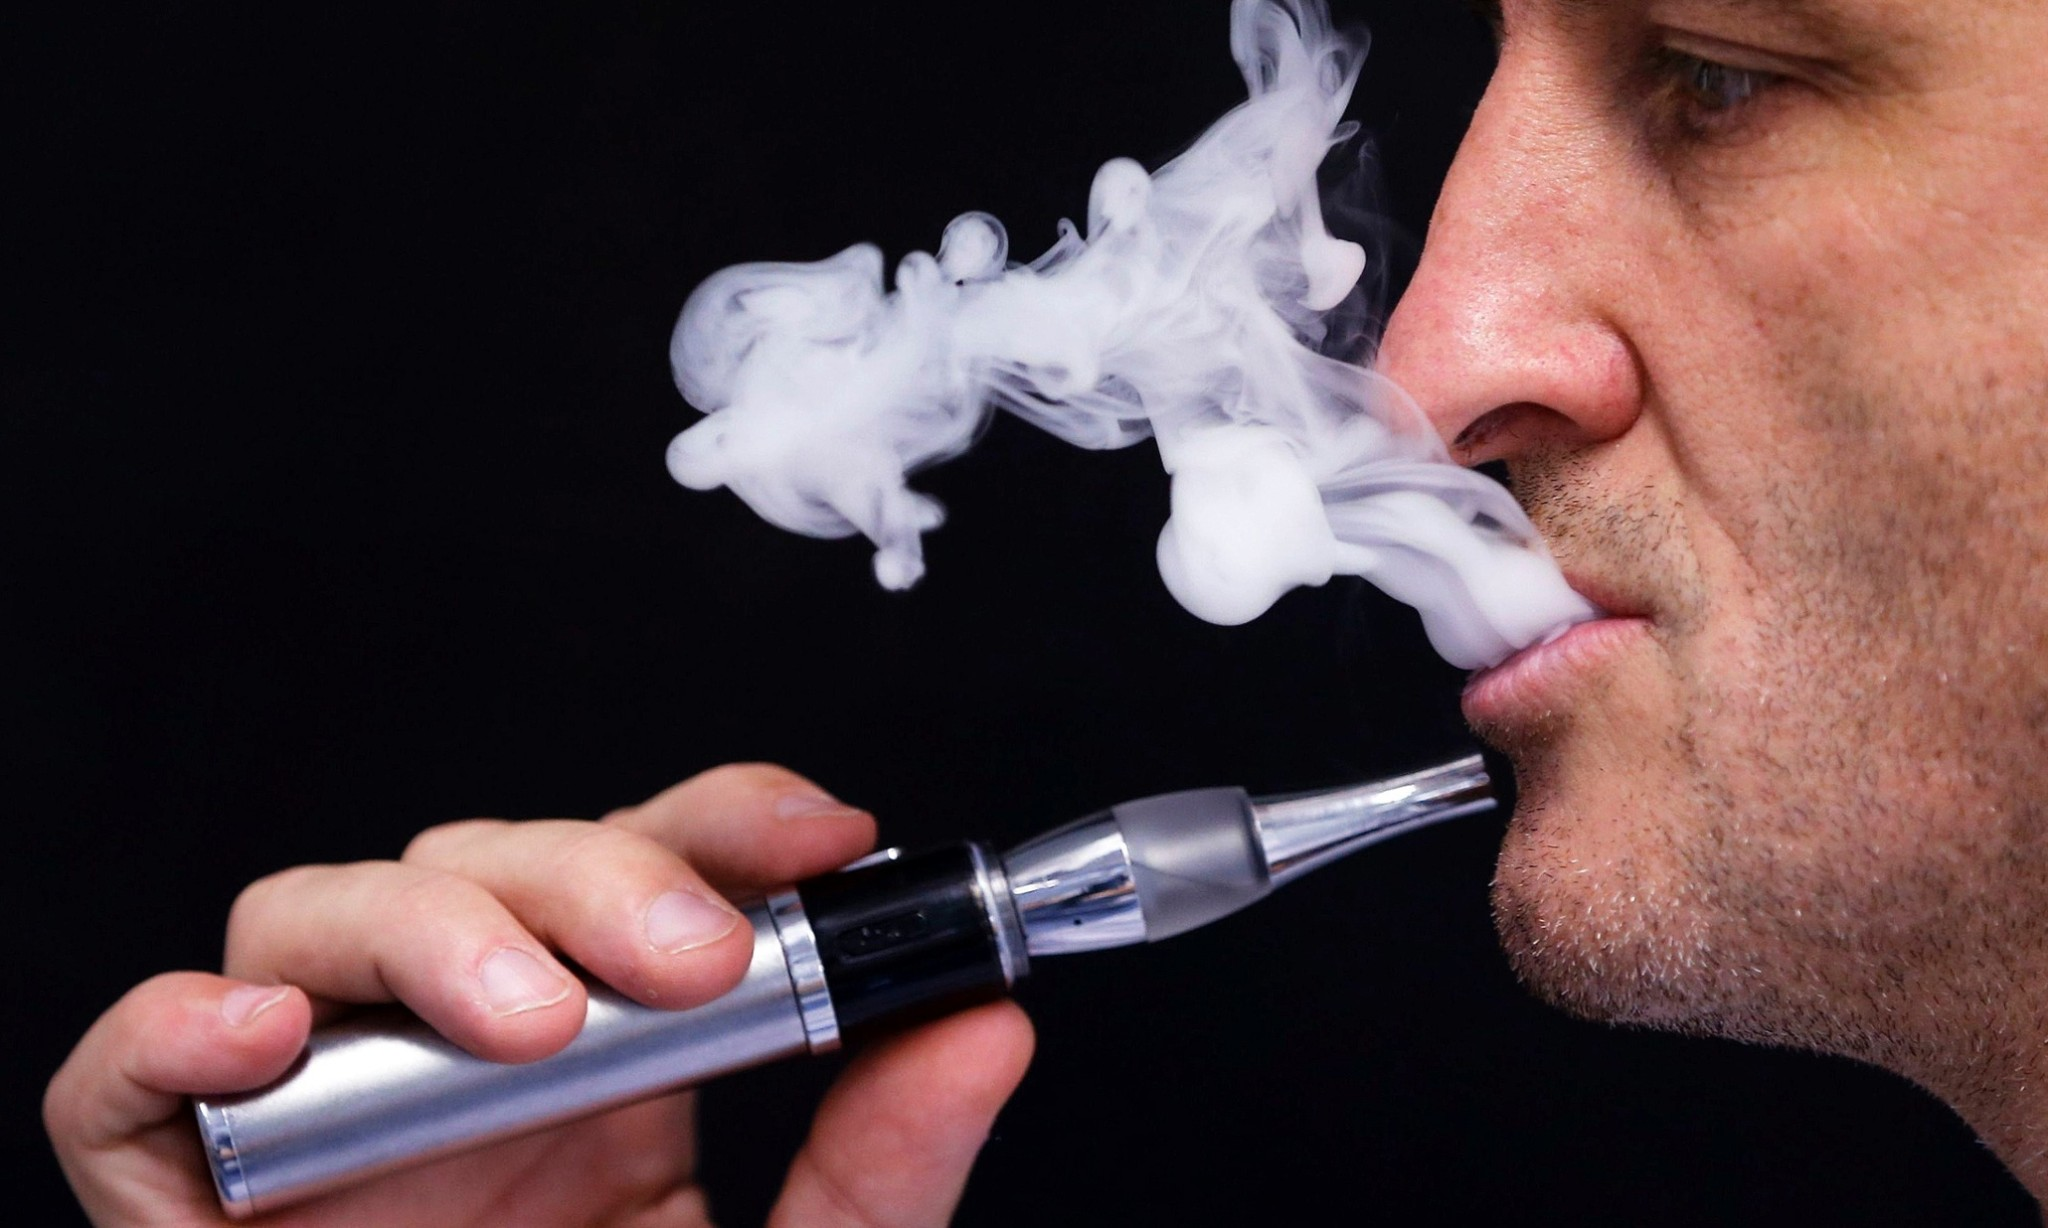 'Vape' may be word of the year, but is 2014 the year stoners tried too hard?